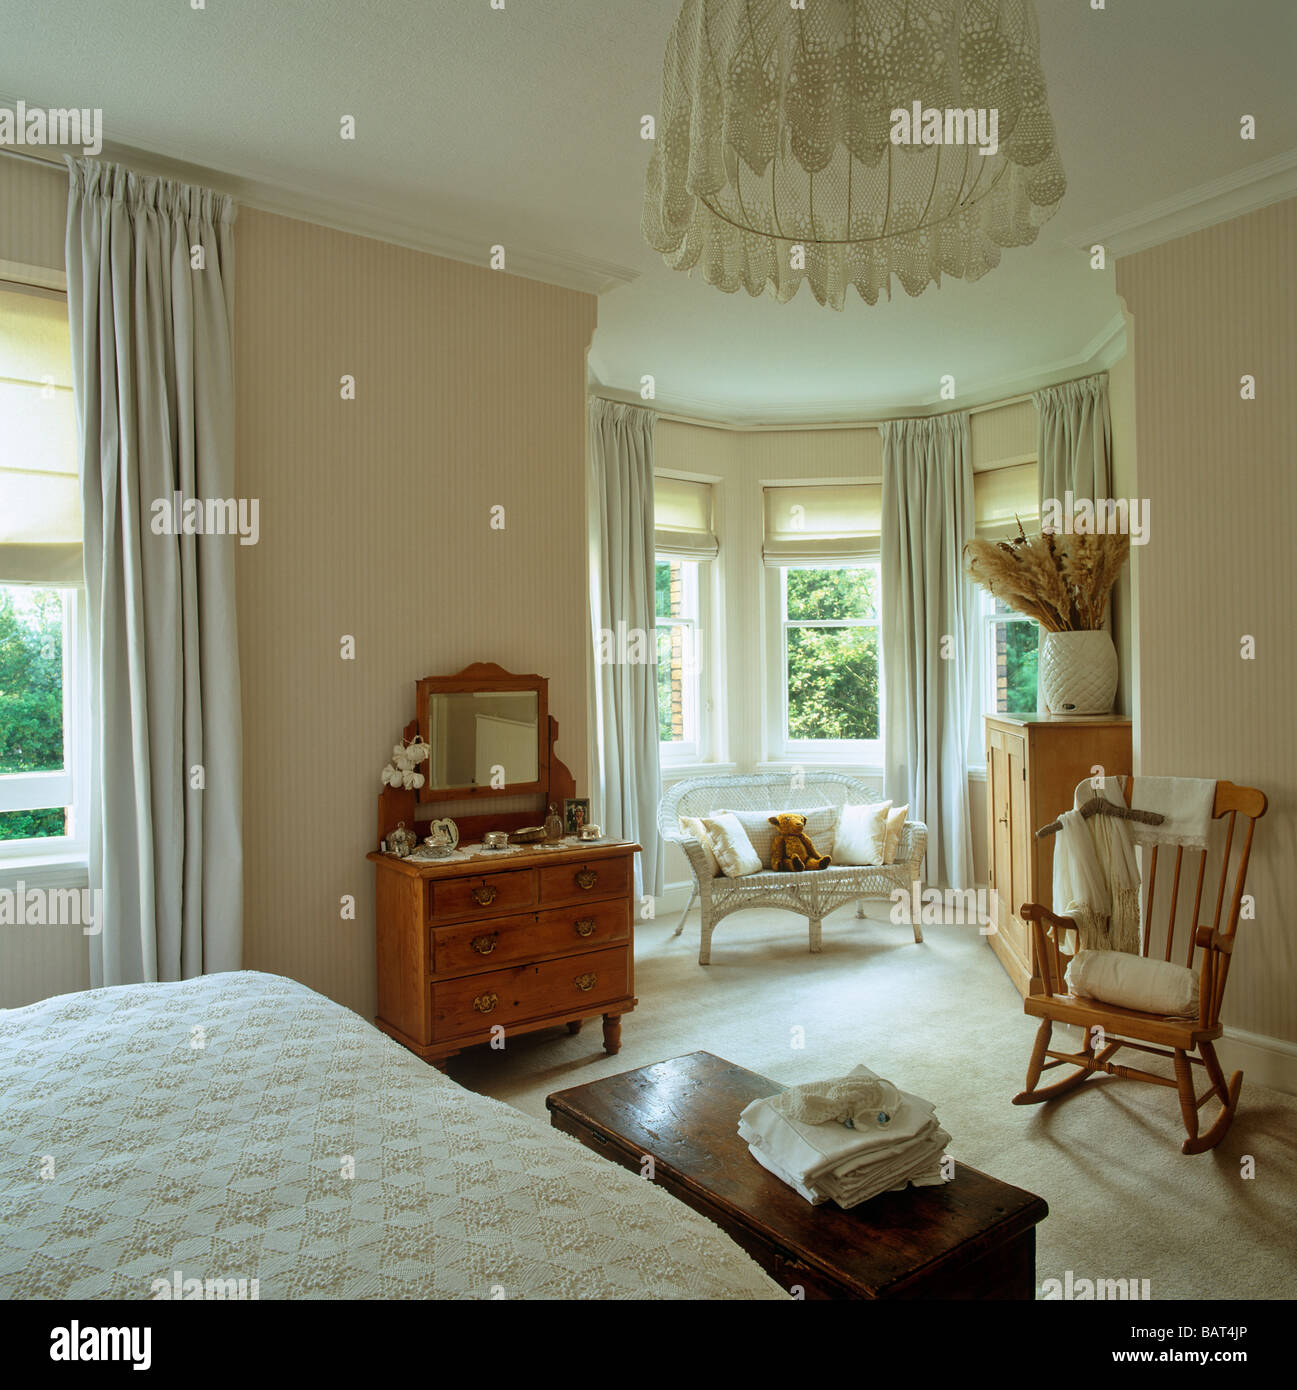 Pale bedroom with pine furniture and bay window - Stock Image